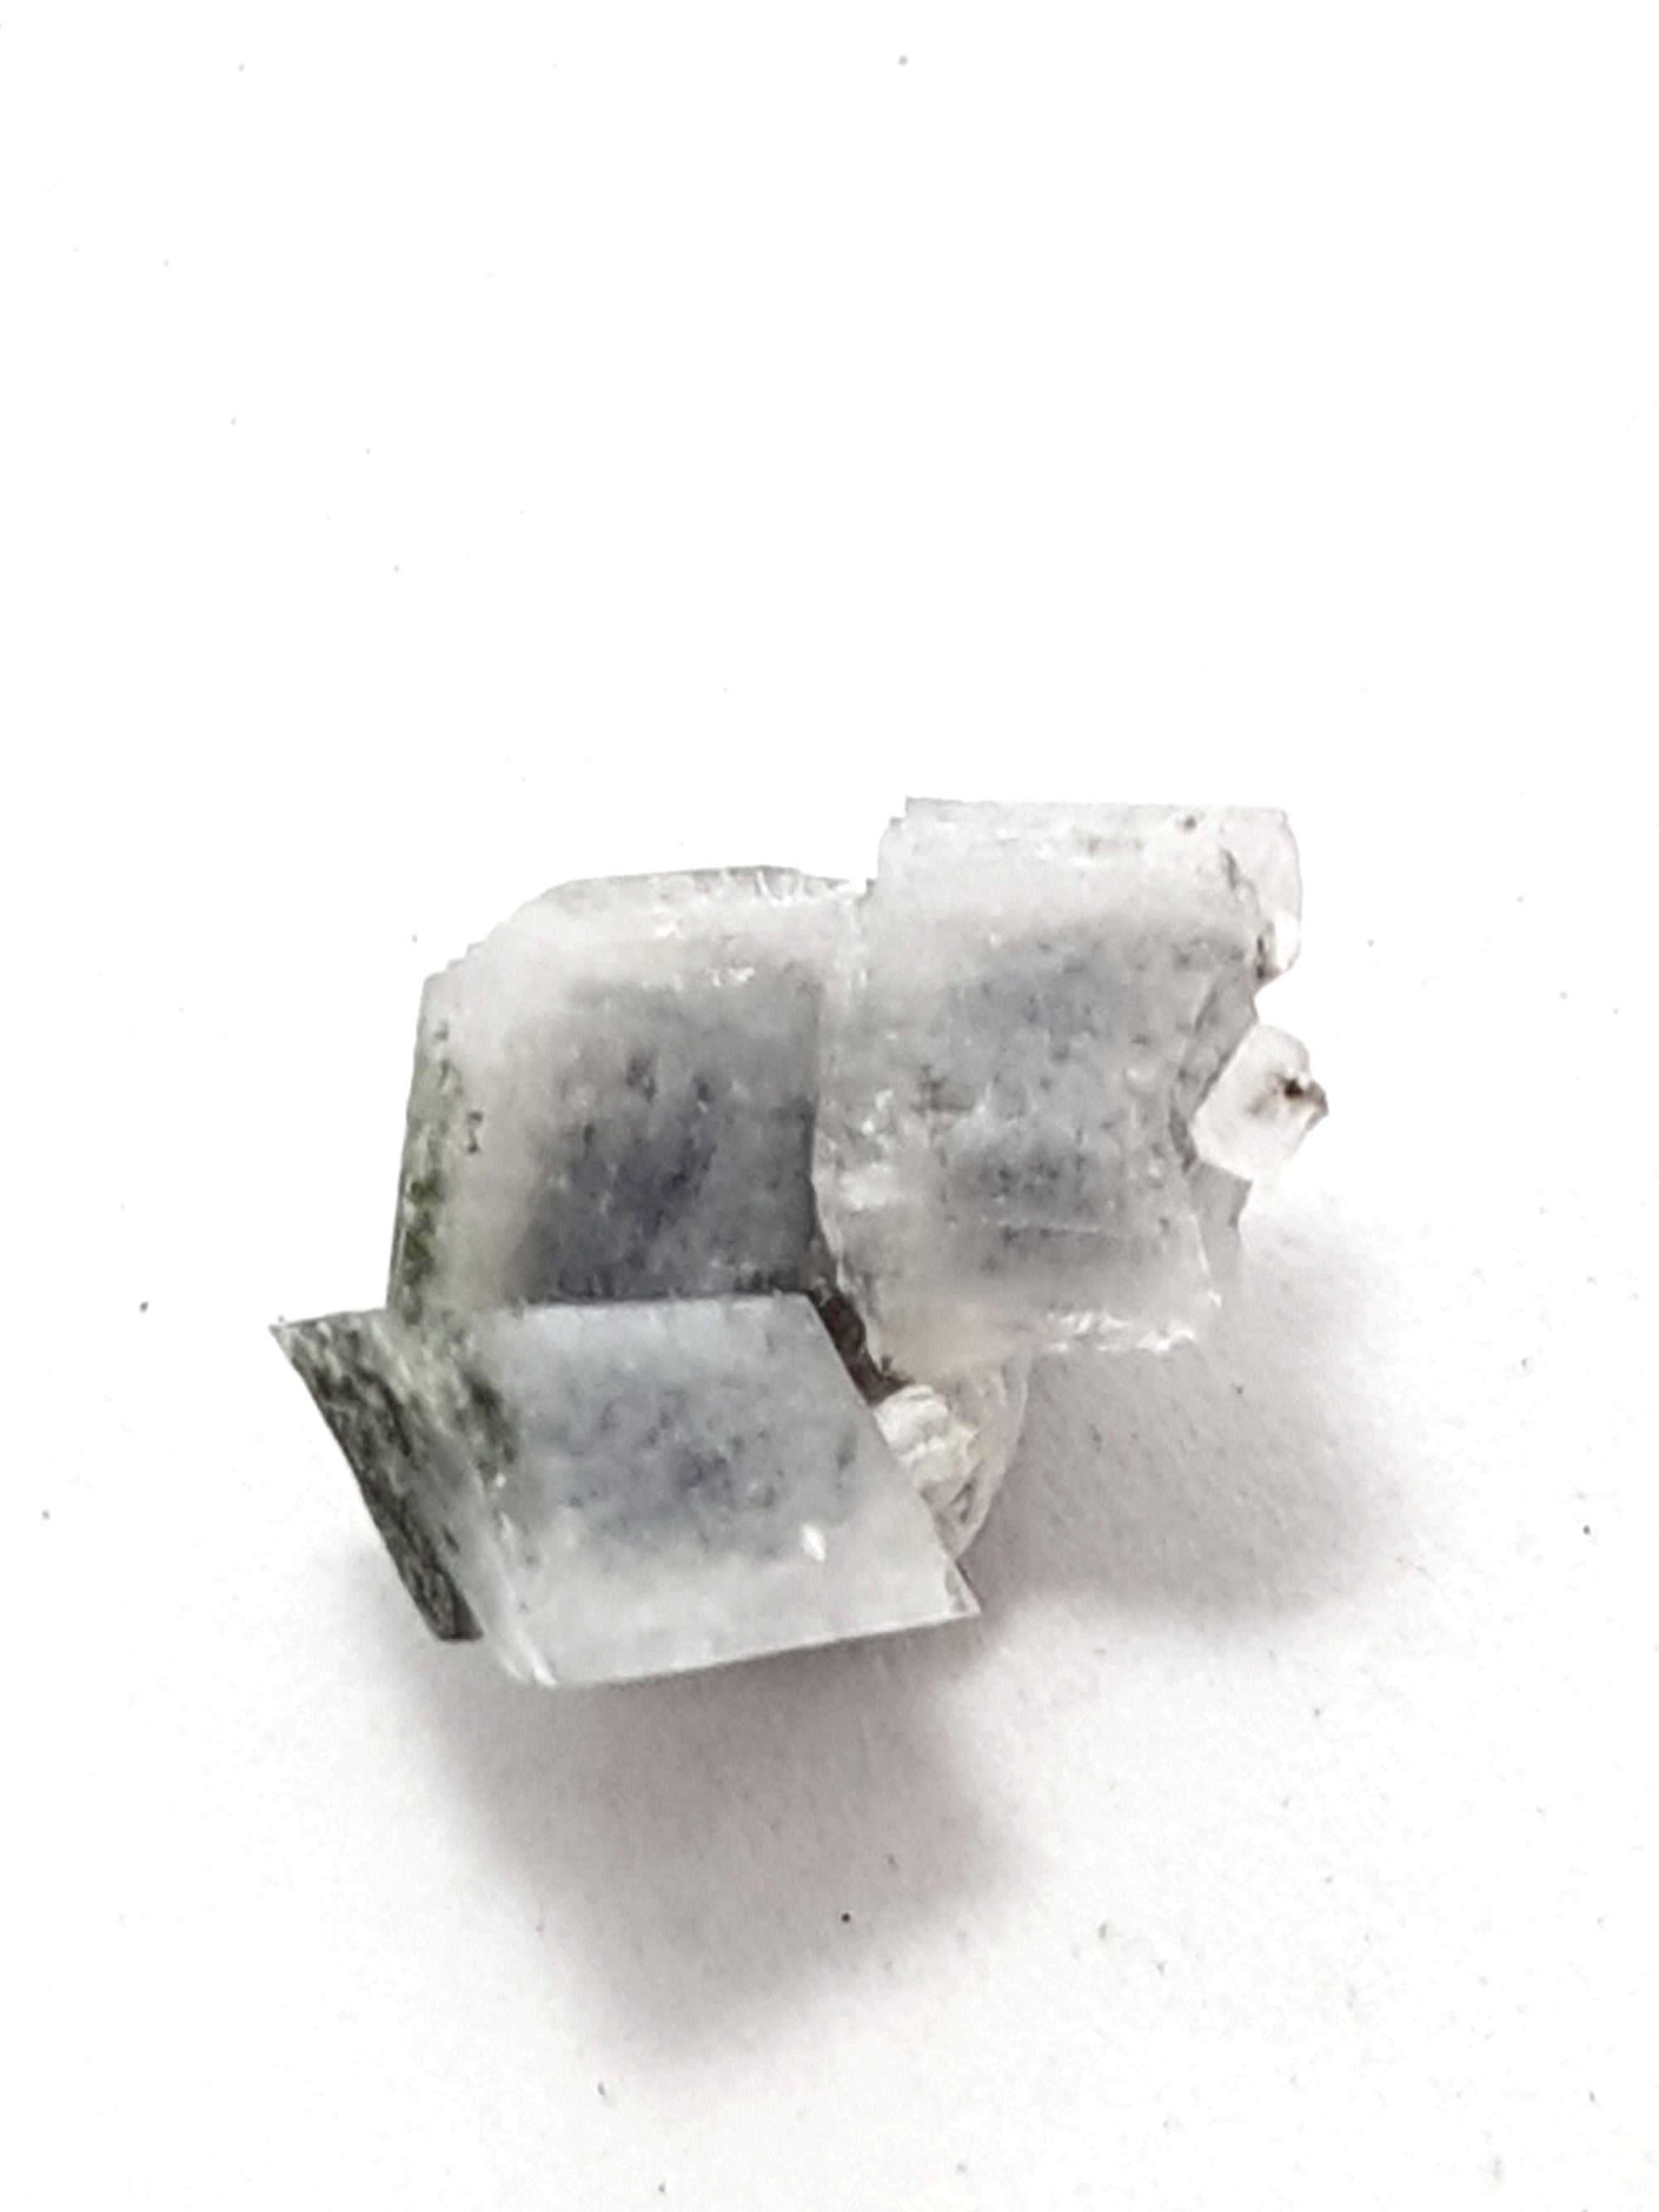 adularia crystals. There are three in a cluster. They are white. They are rhombic